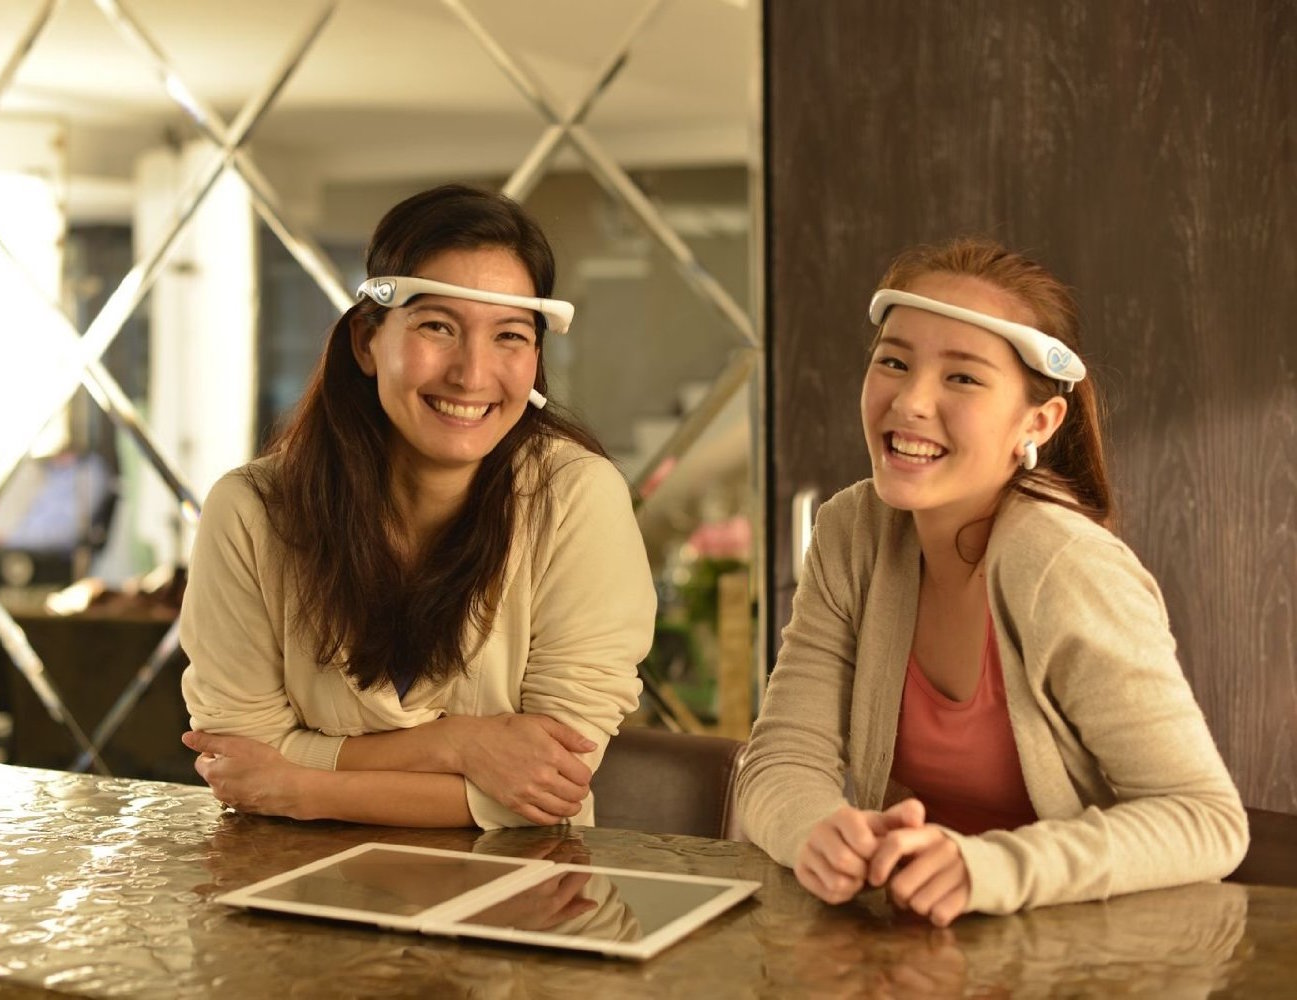 Brainlink Portable Headset – Keeps Your Mind Young and Energetic